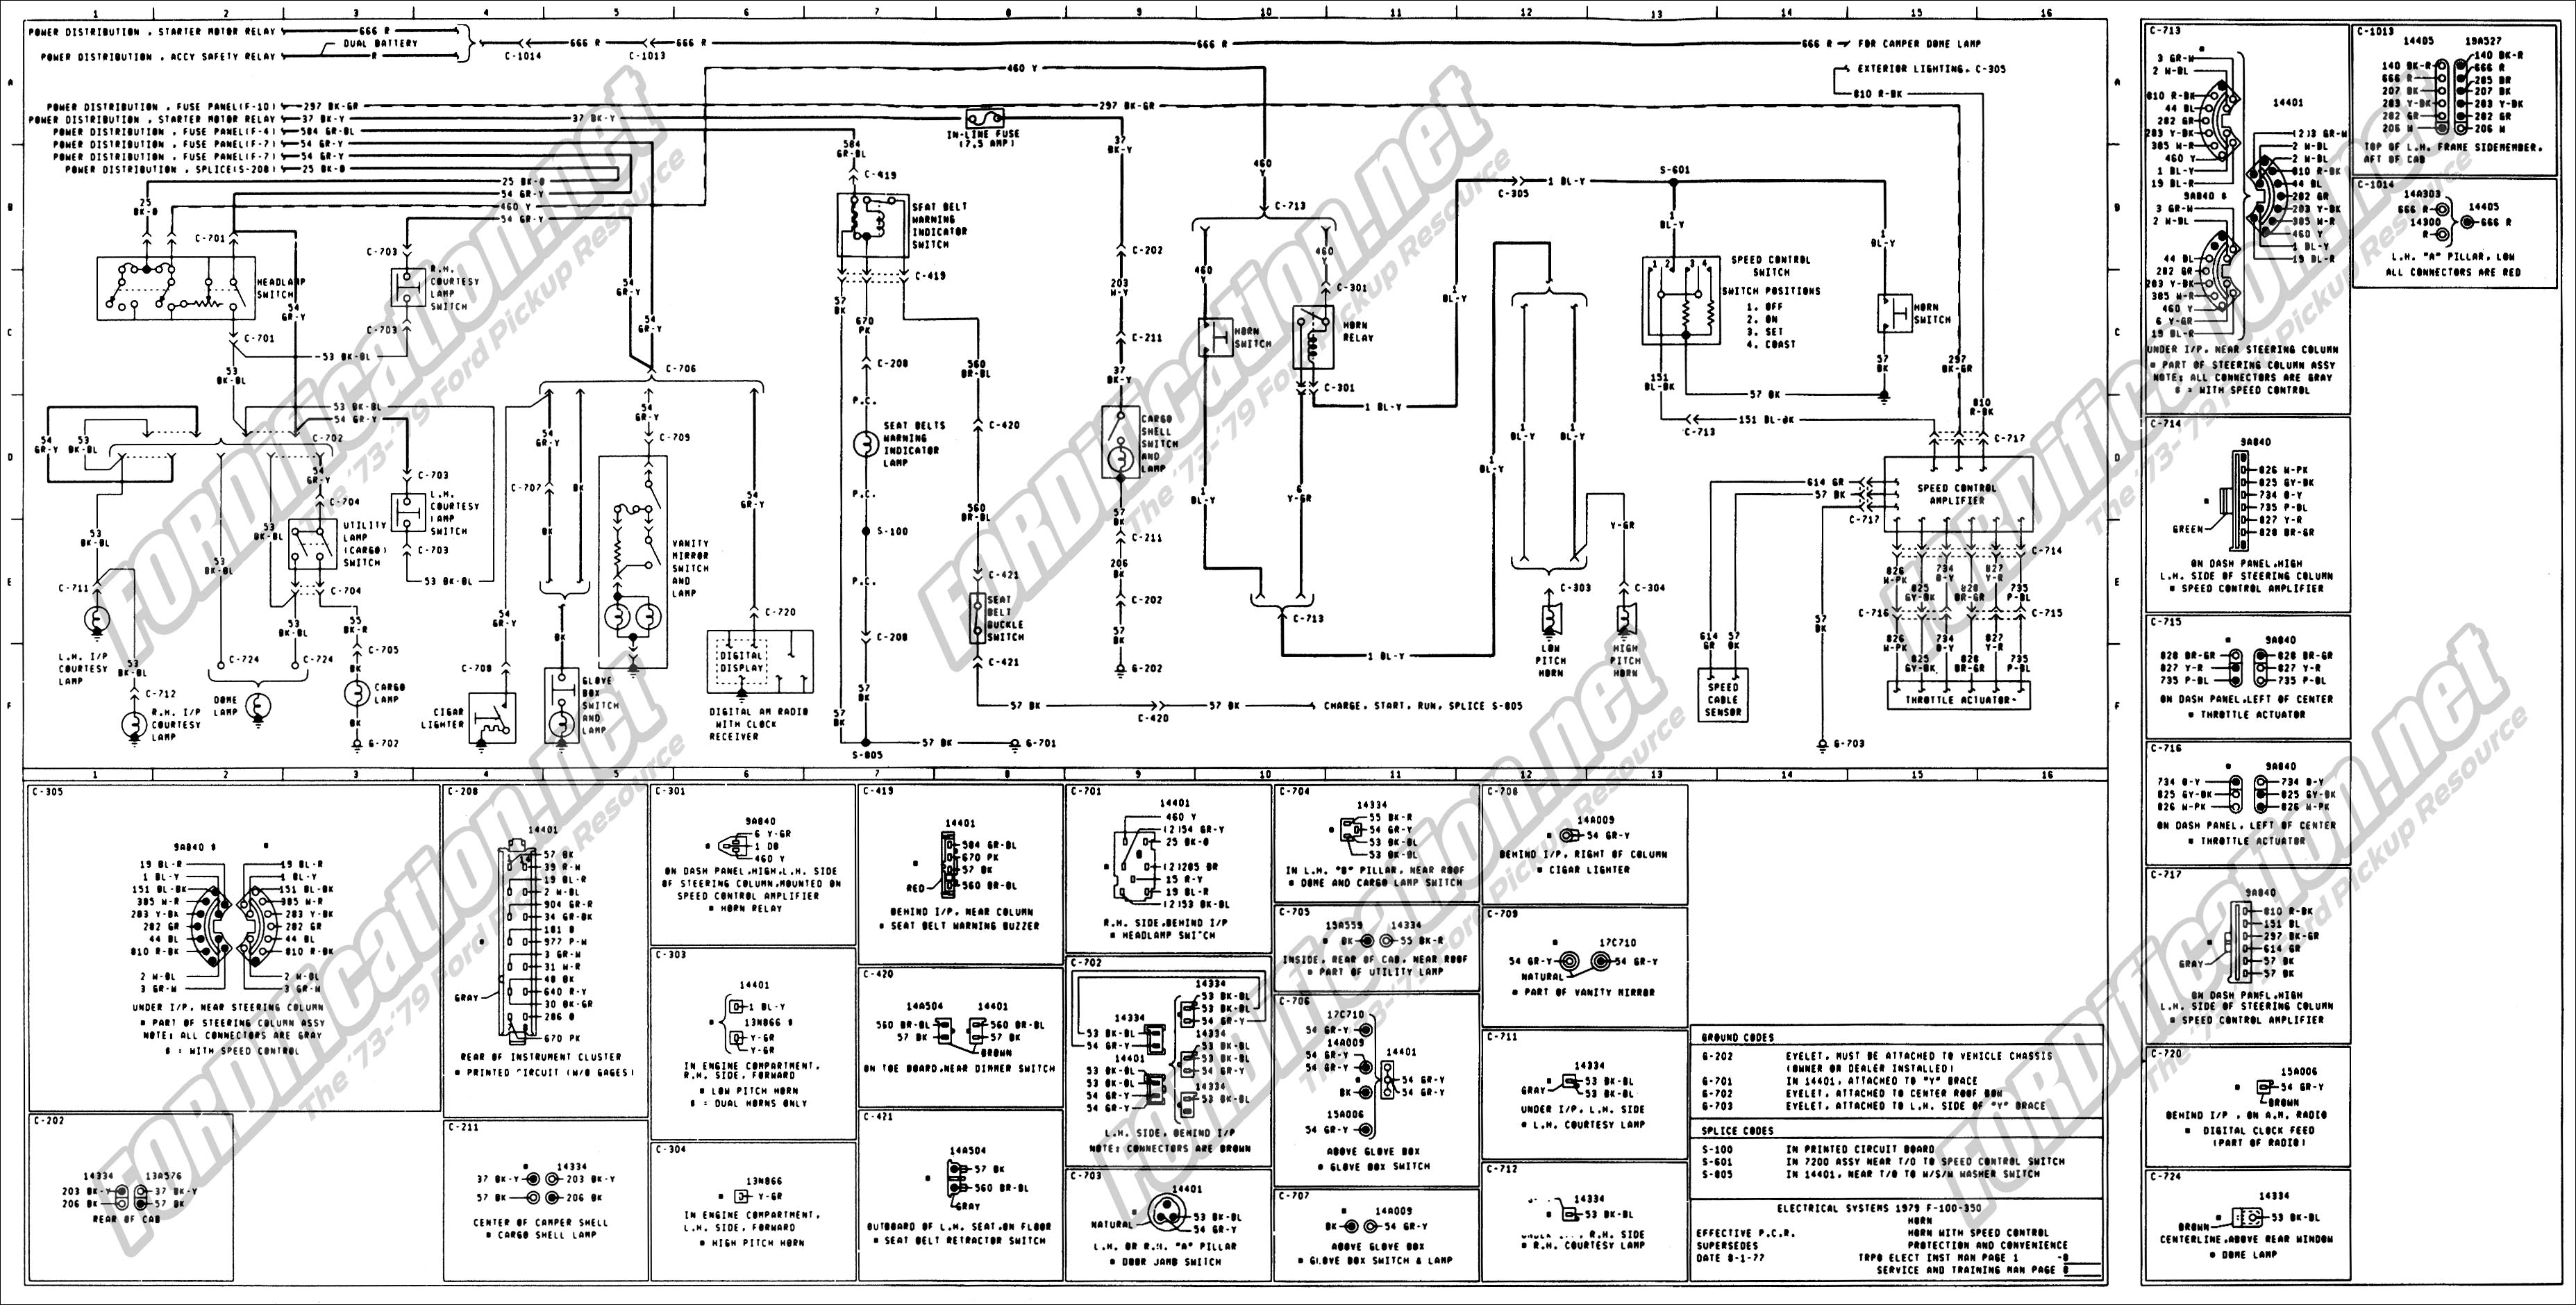 Ford 460 Wiring Diagram Wiring Diagram Schematics 50 Ford Pickup Parts Ford  460 Starter Wiring. Source. ford 460 torque mini ...